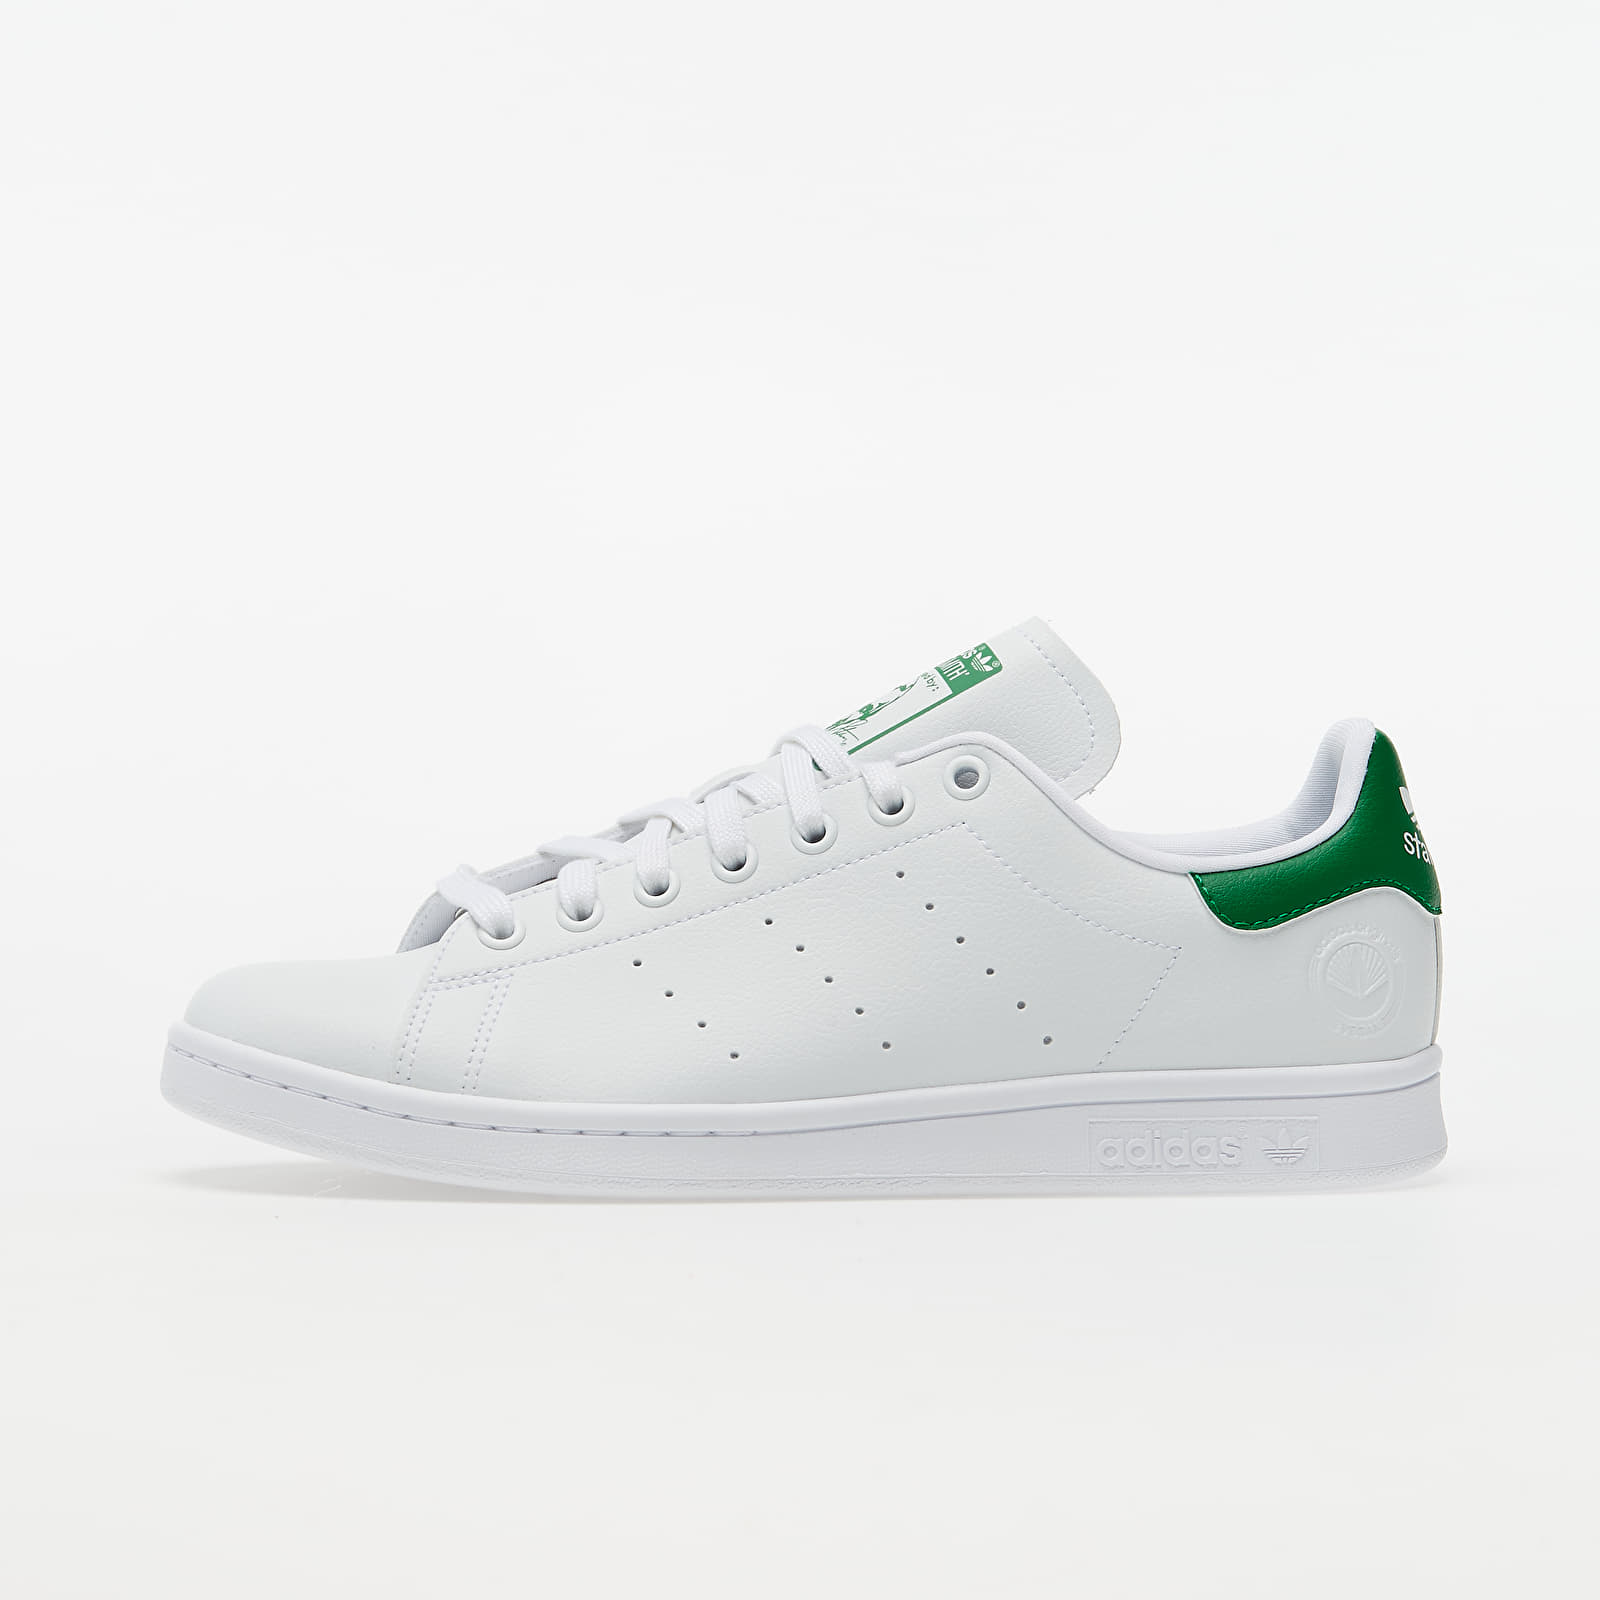 Férfi cipők adidas Stan Smith Vegan Ftw White/ Green/ Ftw White